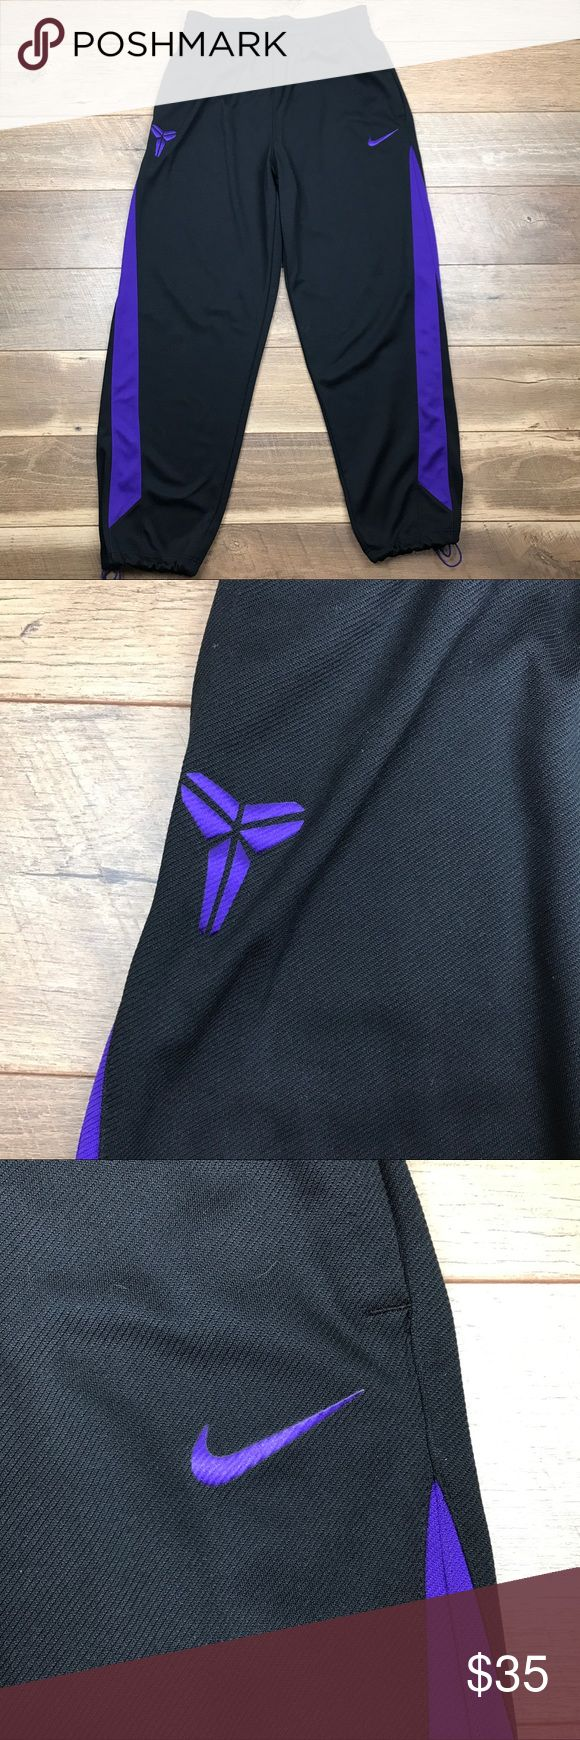 Nike Kobe Dri-Fit Basketball Pants Nike Kobe Dri-Fit Basketball Pants. 100% polyester. Adjustable drawstring at waist and at ankles. Lightweight and comfortable. Excellent condition. Nike Pants Sweatpants & Joggers